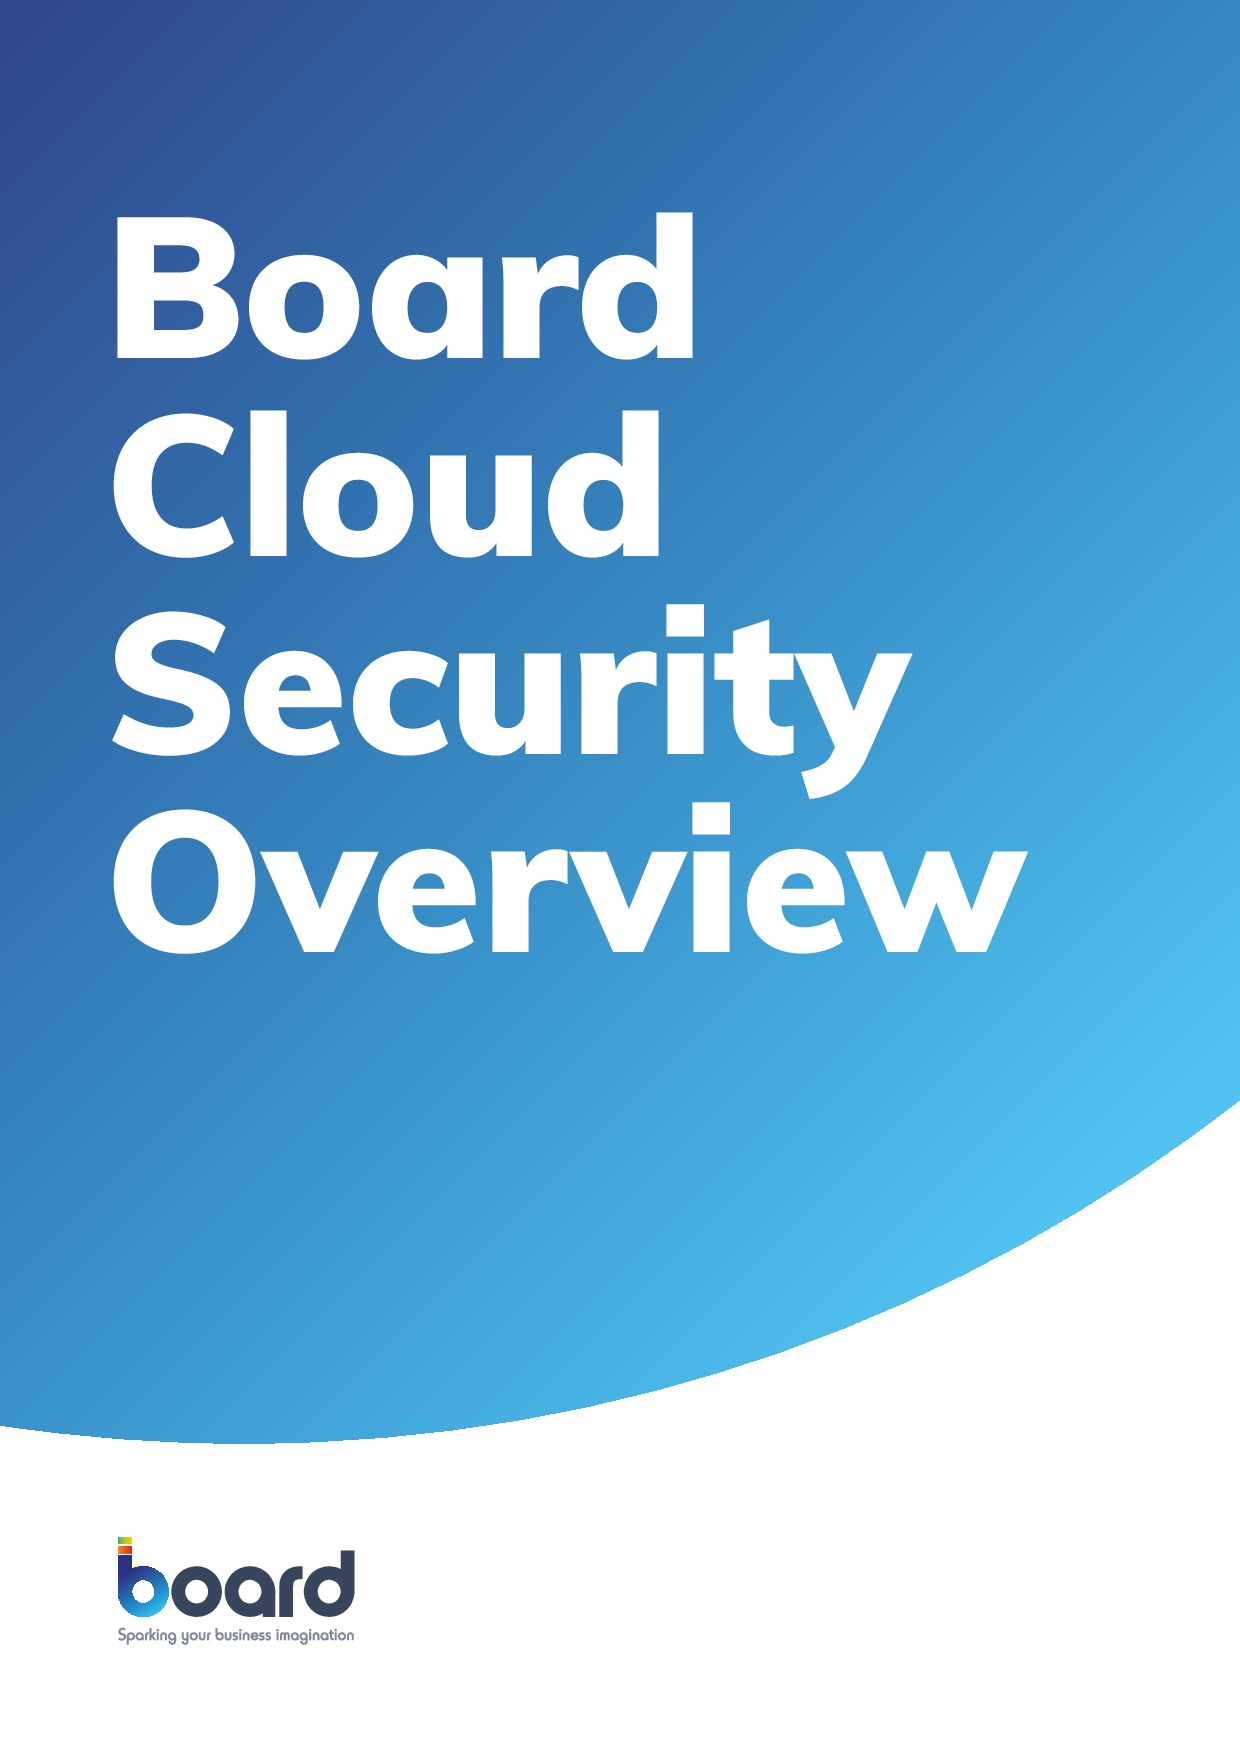 Board Cloud Security Overview